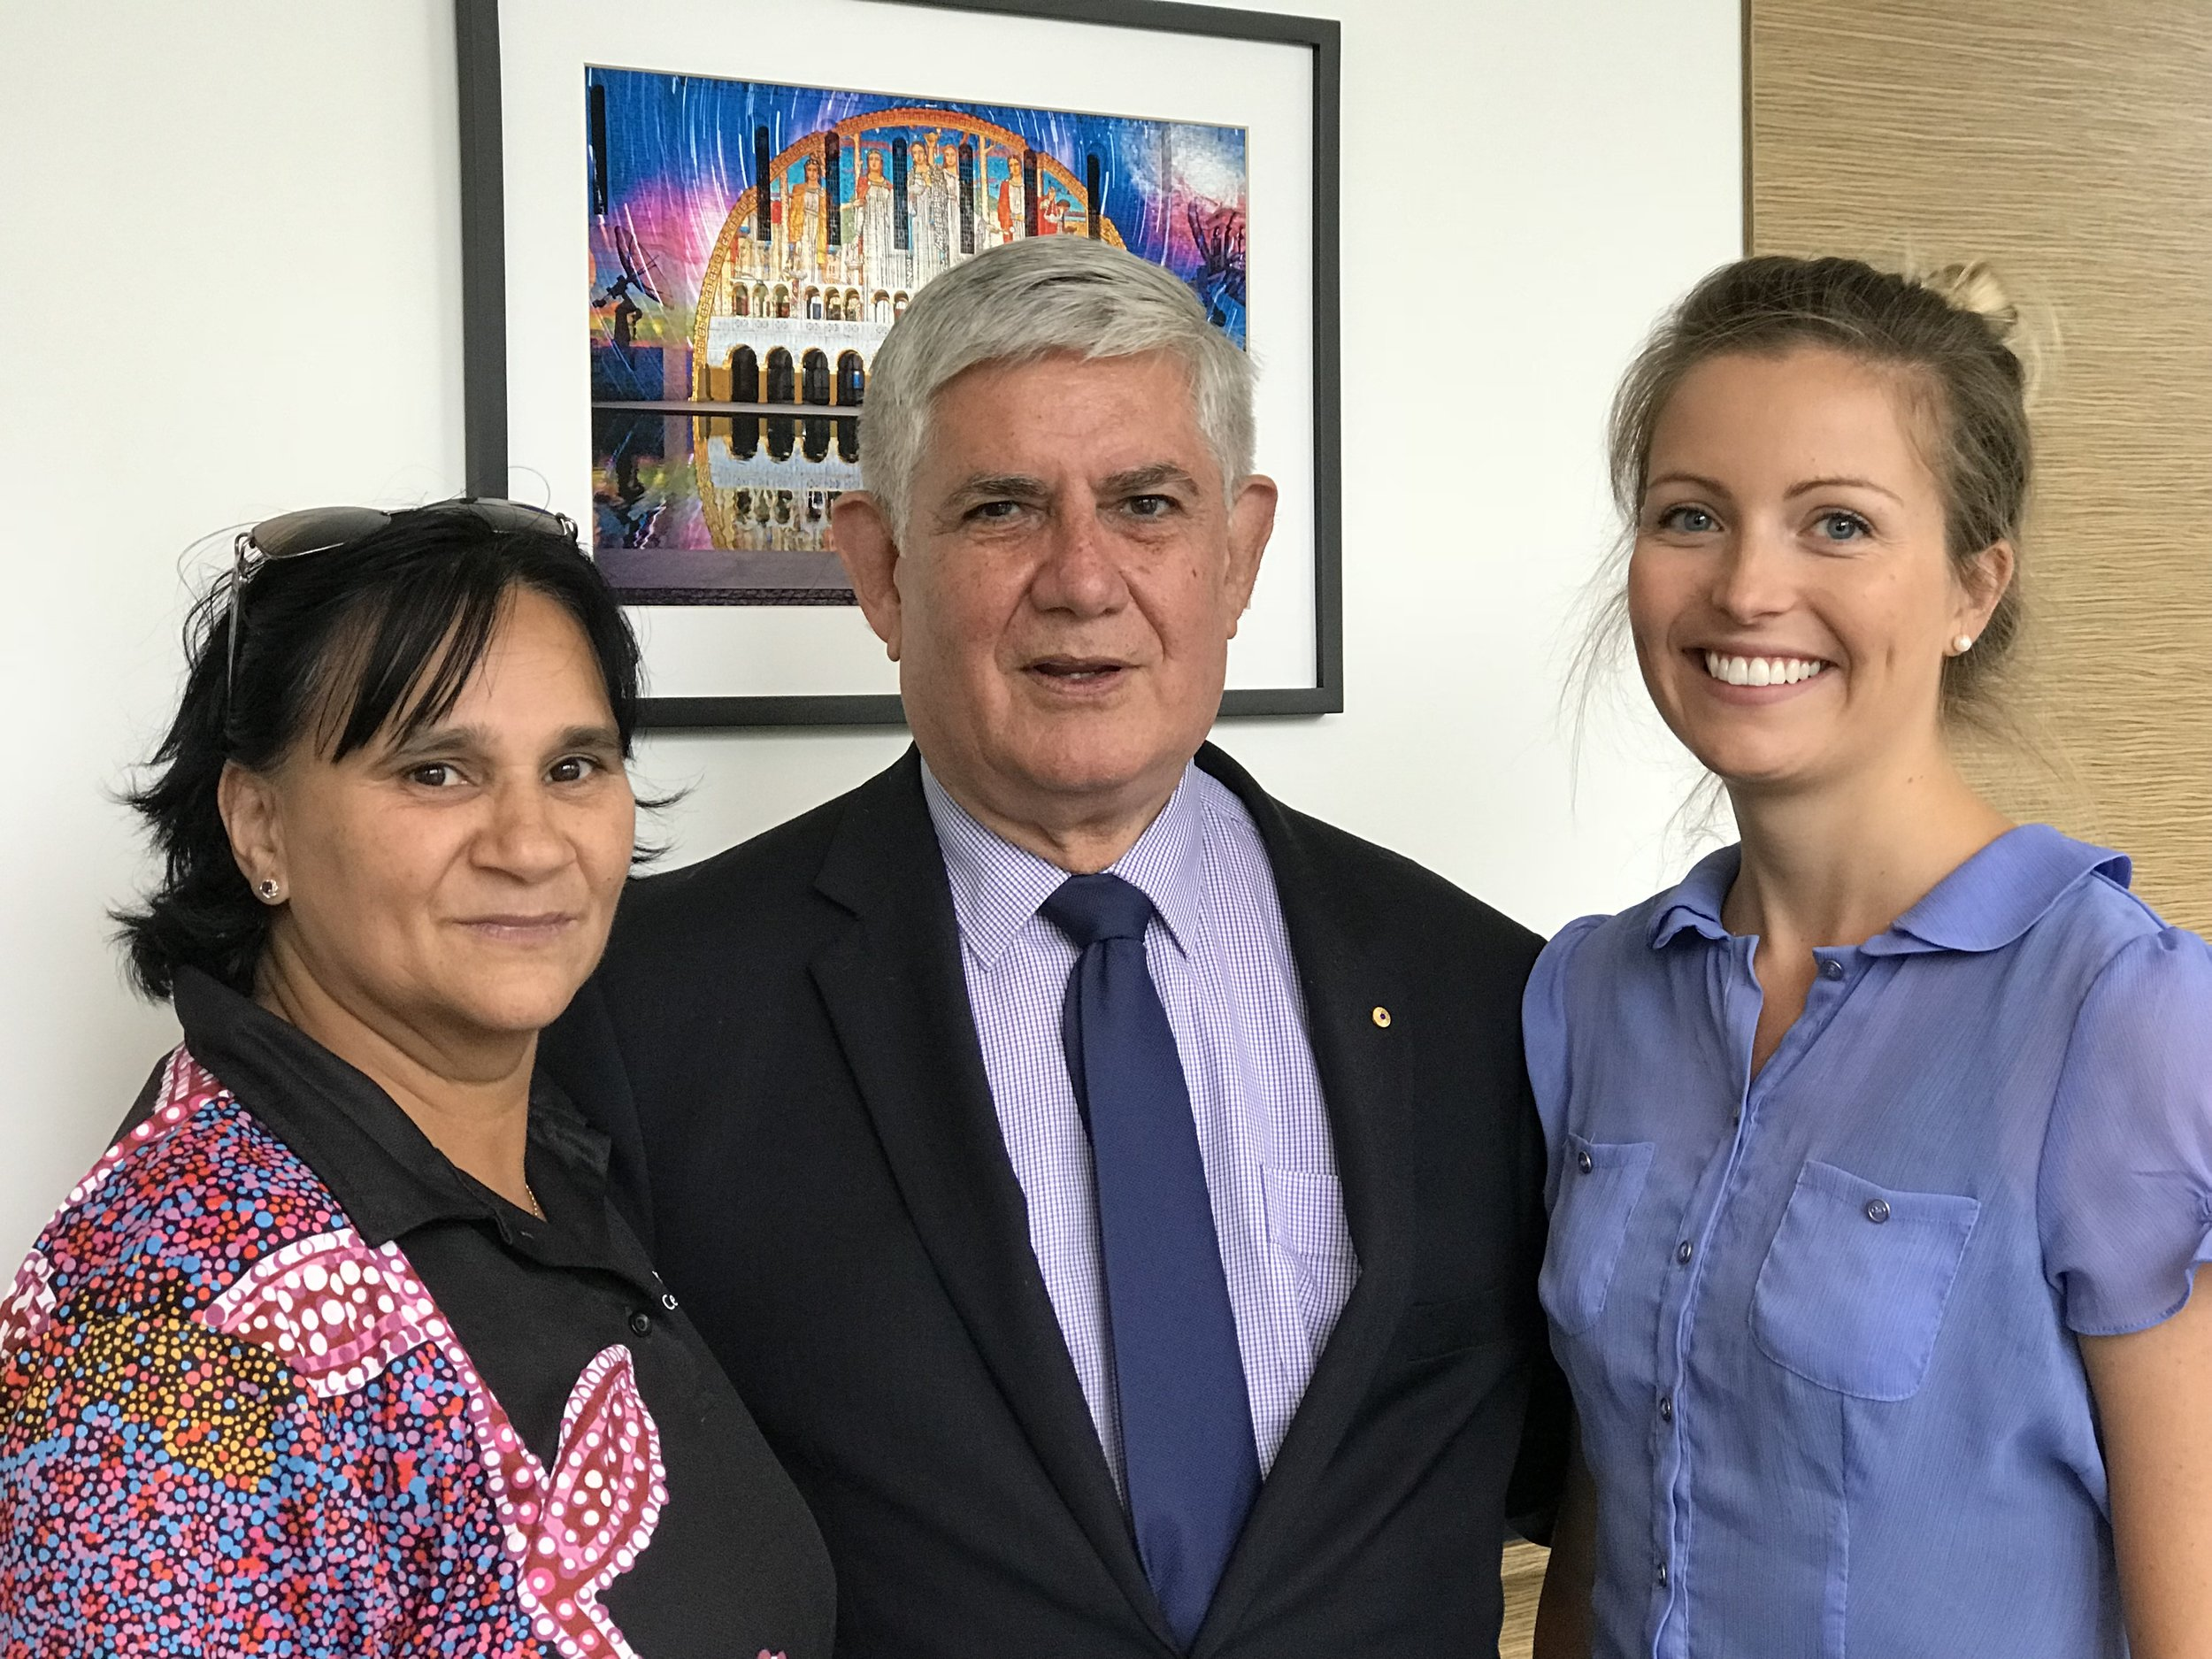 Left to right: Lenny Papertalk from WACRH, Minister Ken Wyatt and Celeste Larkins